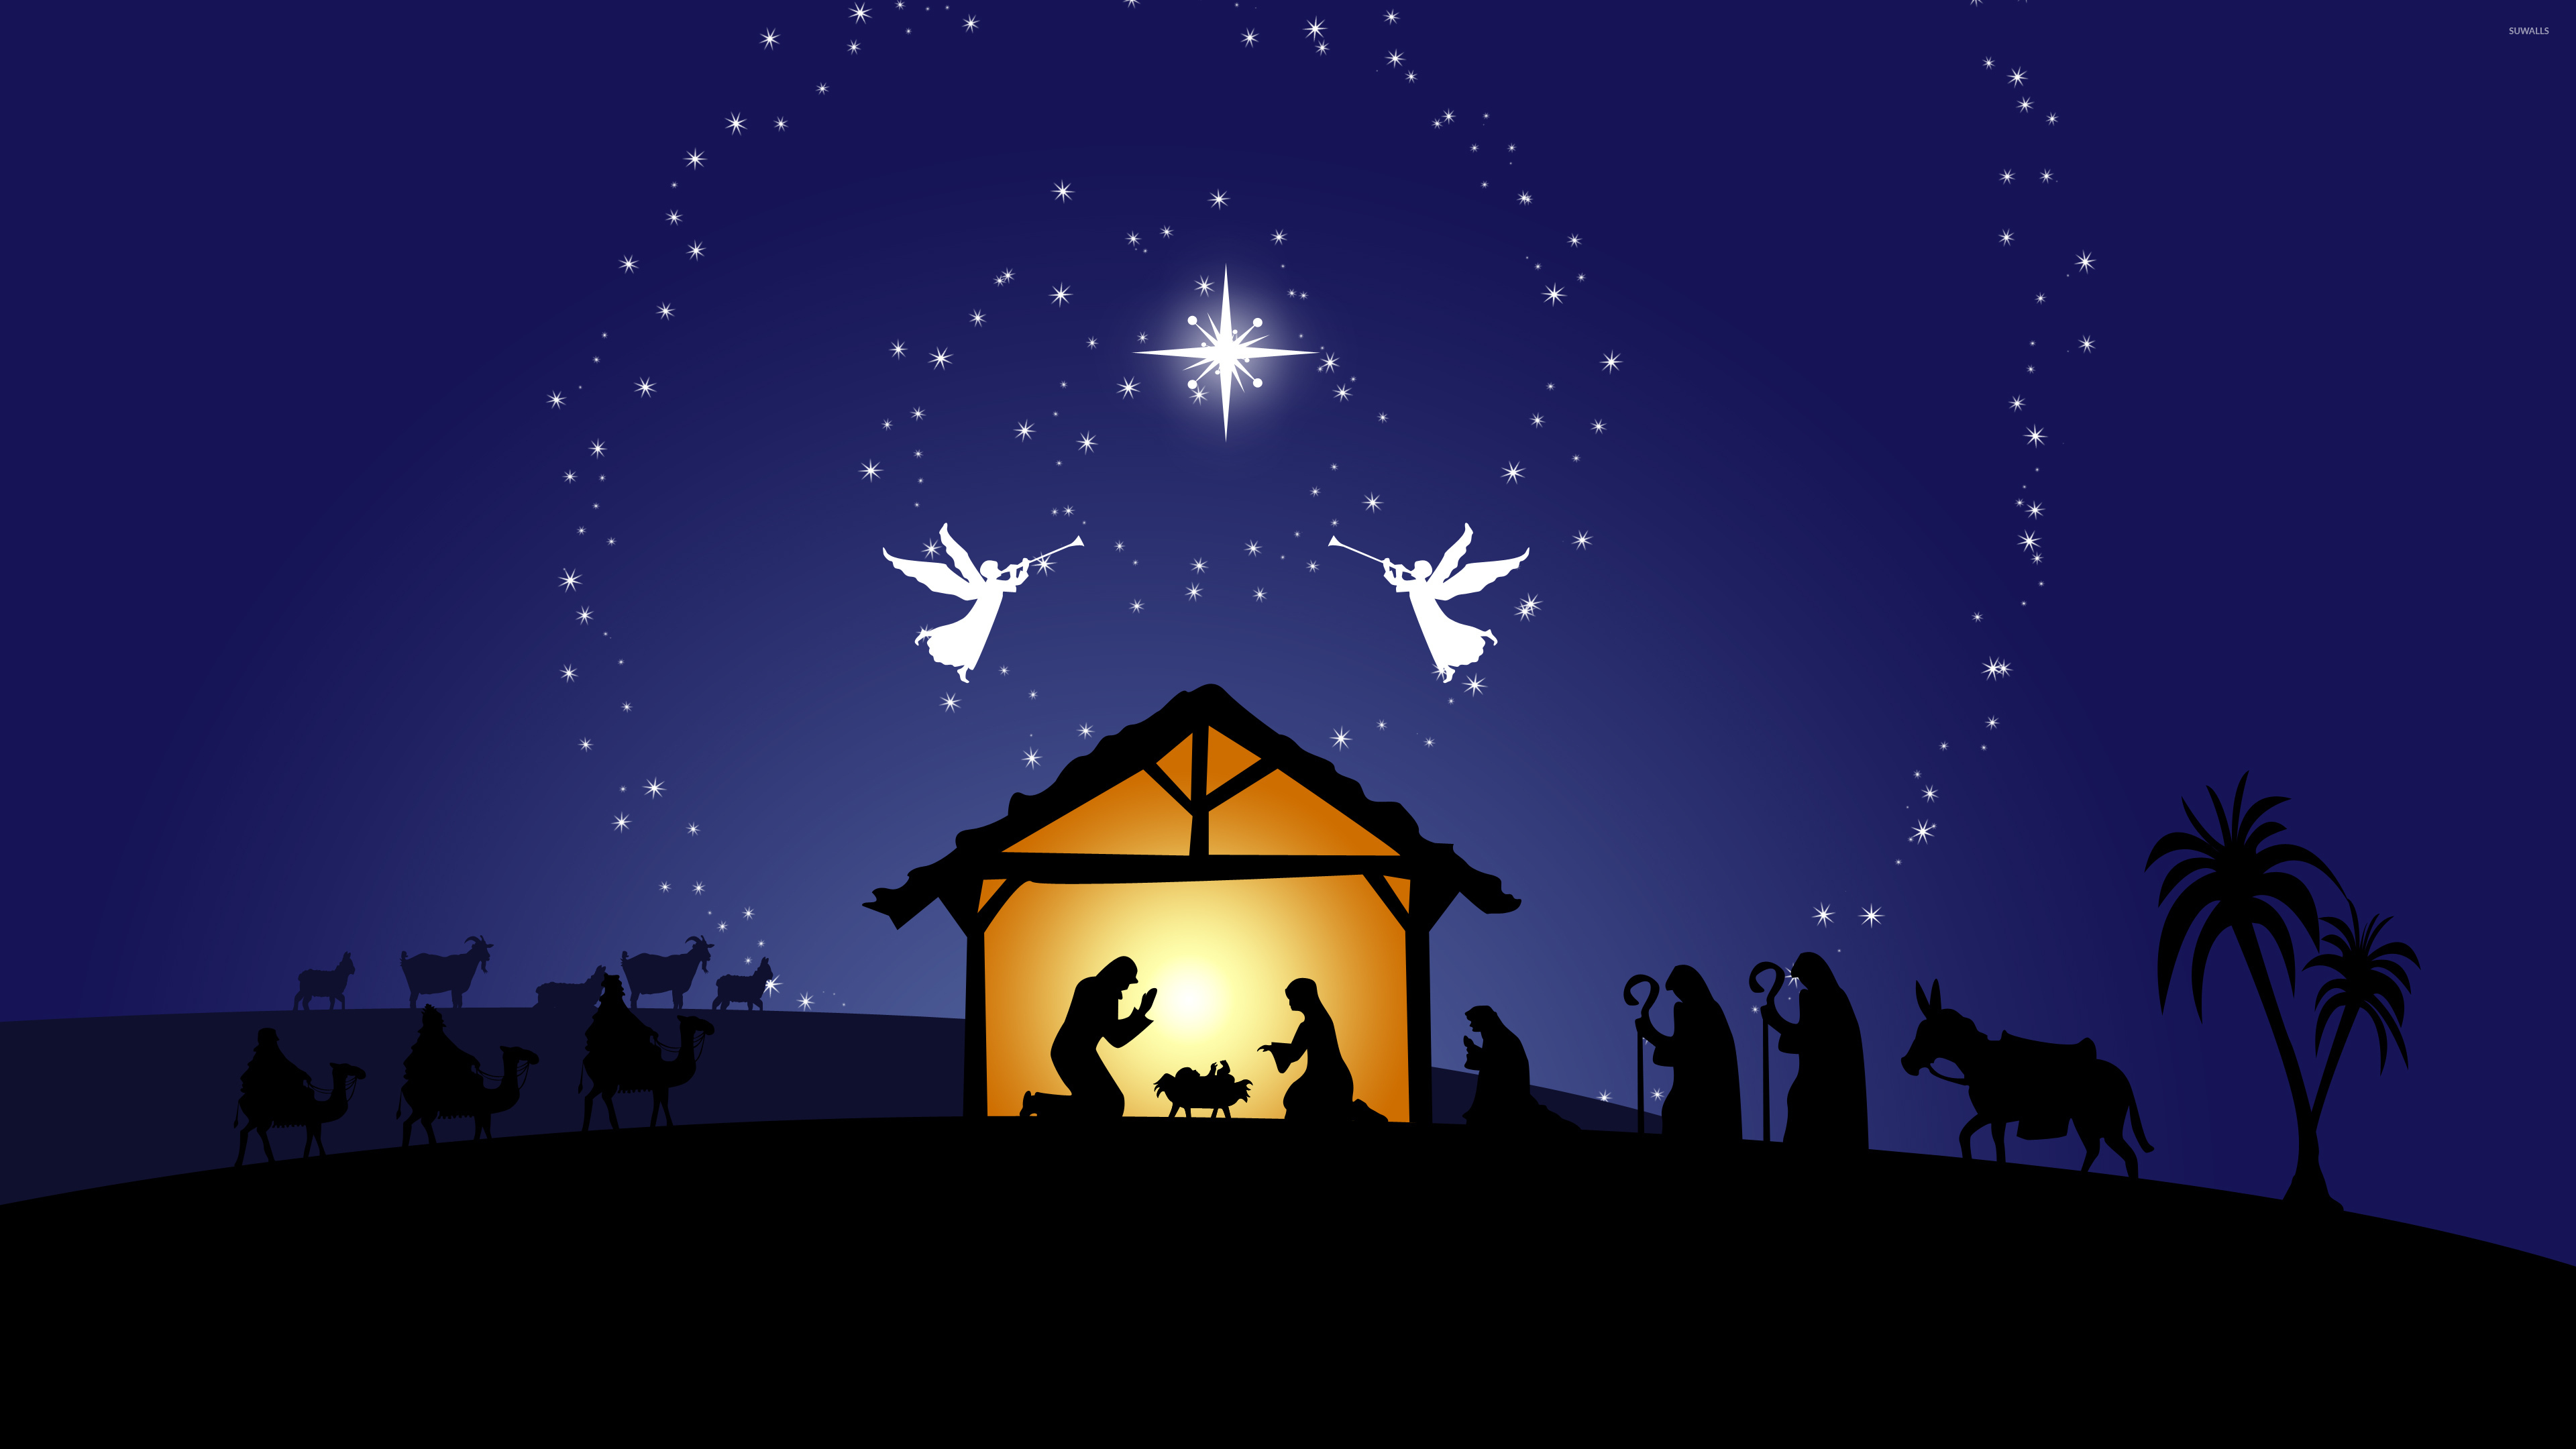 Image result for nativity scene images